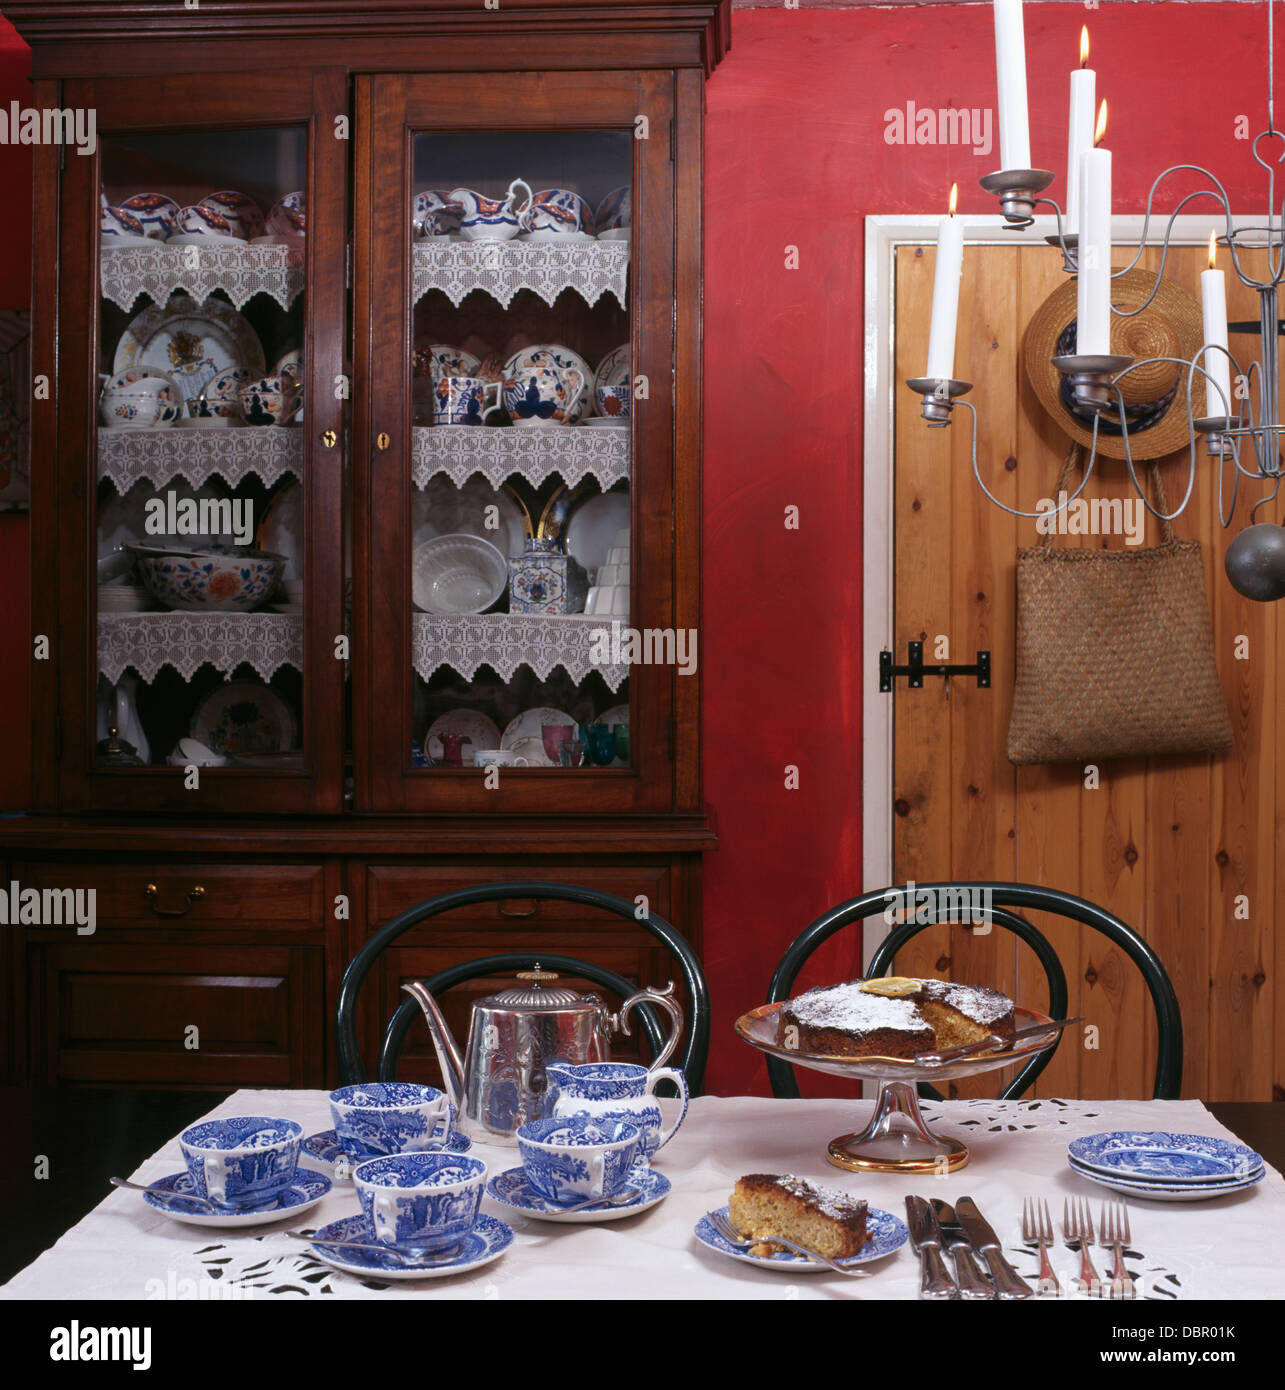 Table Set For Tea With Blue White China In Red Cottage Dining Room Glass Front Dresser And Candle Chandelier